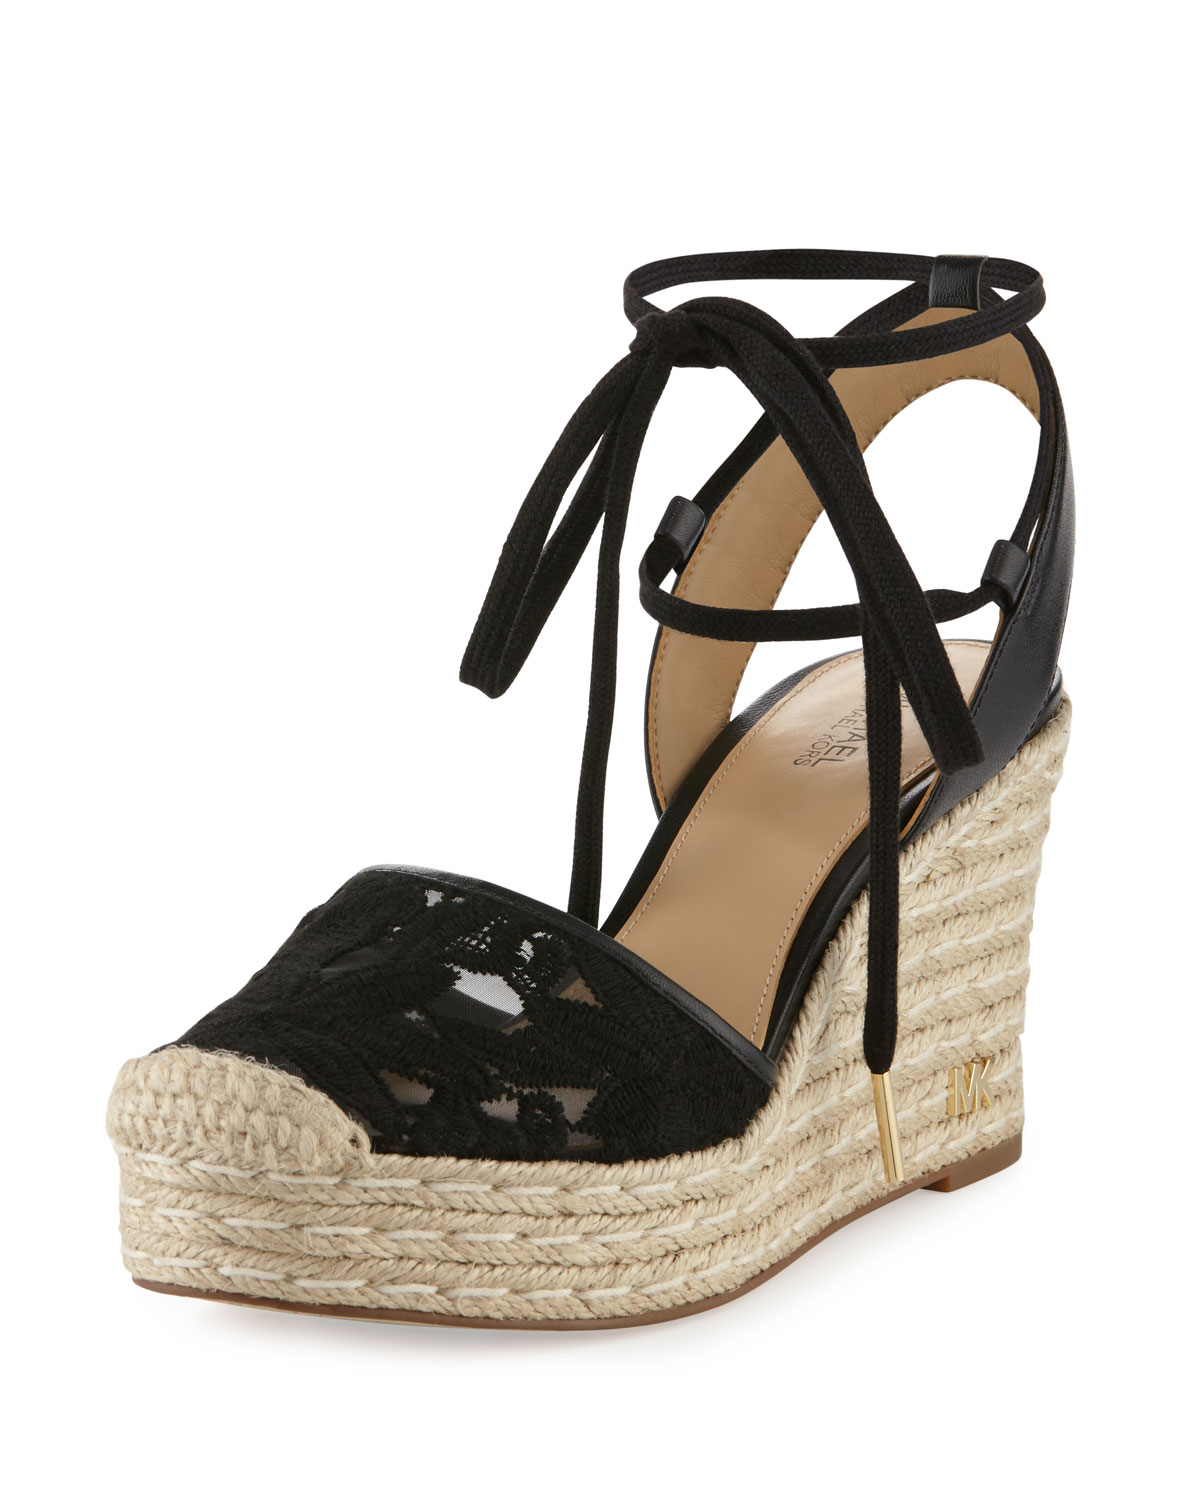 a3f1a2a602e Margie Embroidered Ankle-Wrap Espadrille Wedge Sandal, Black